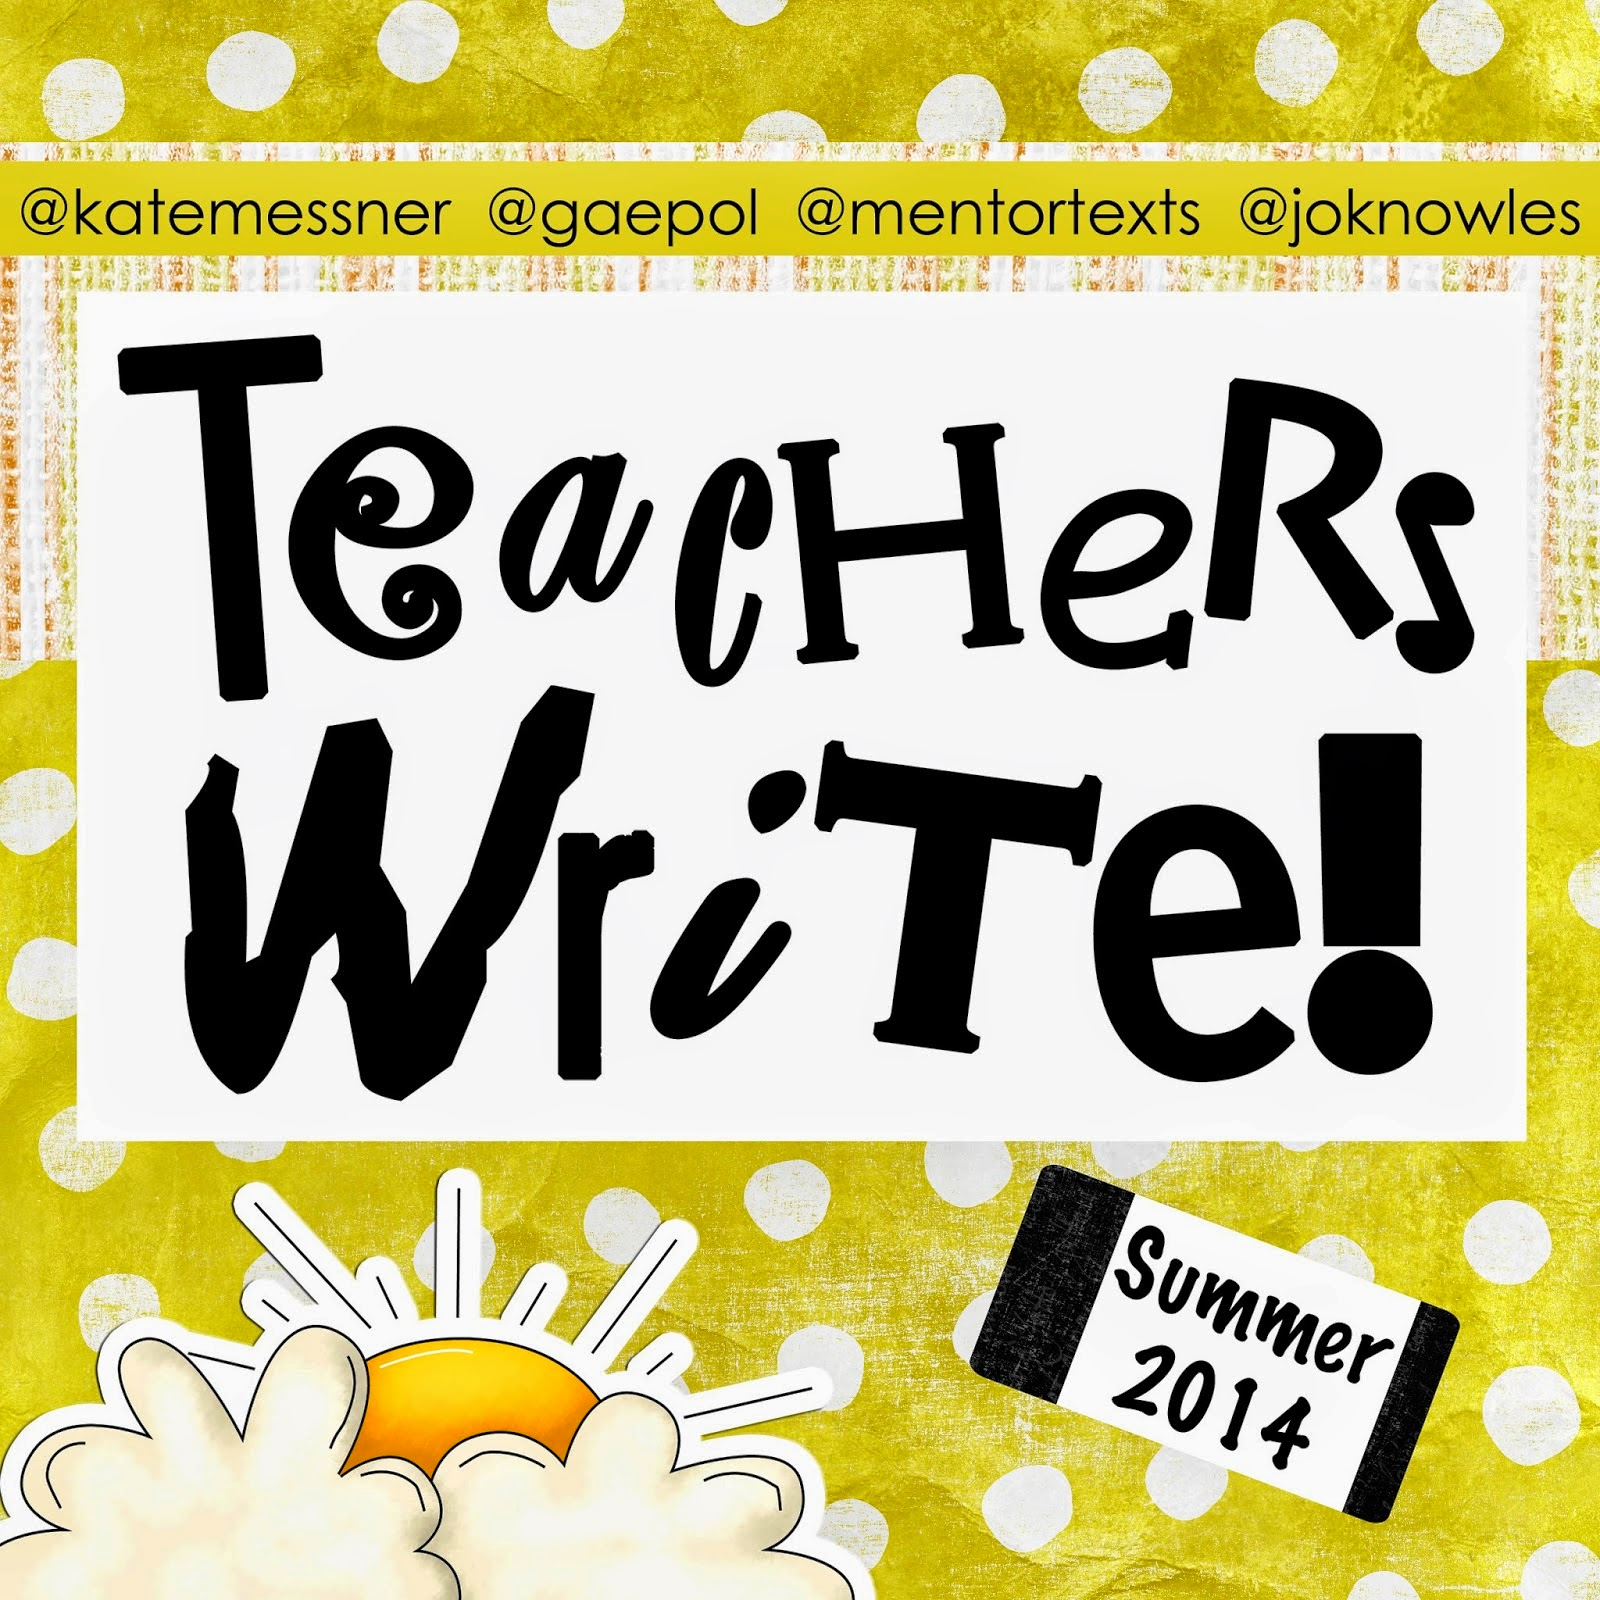 Teachers Write starts July 7th!